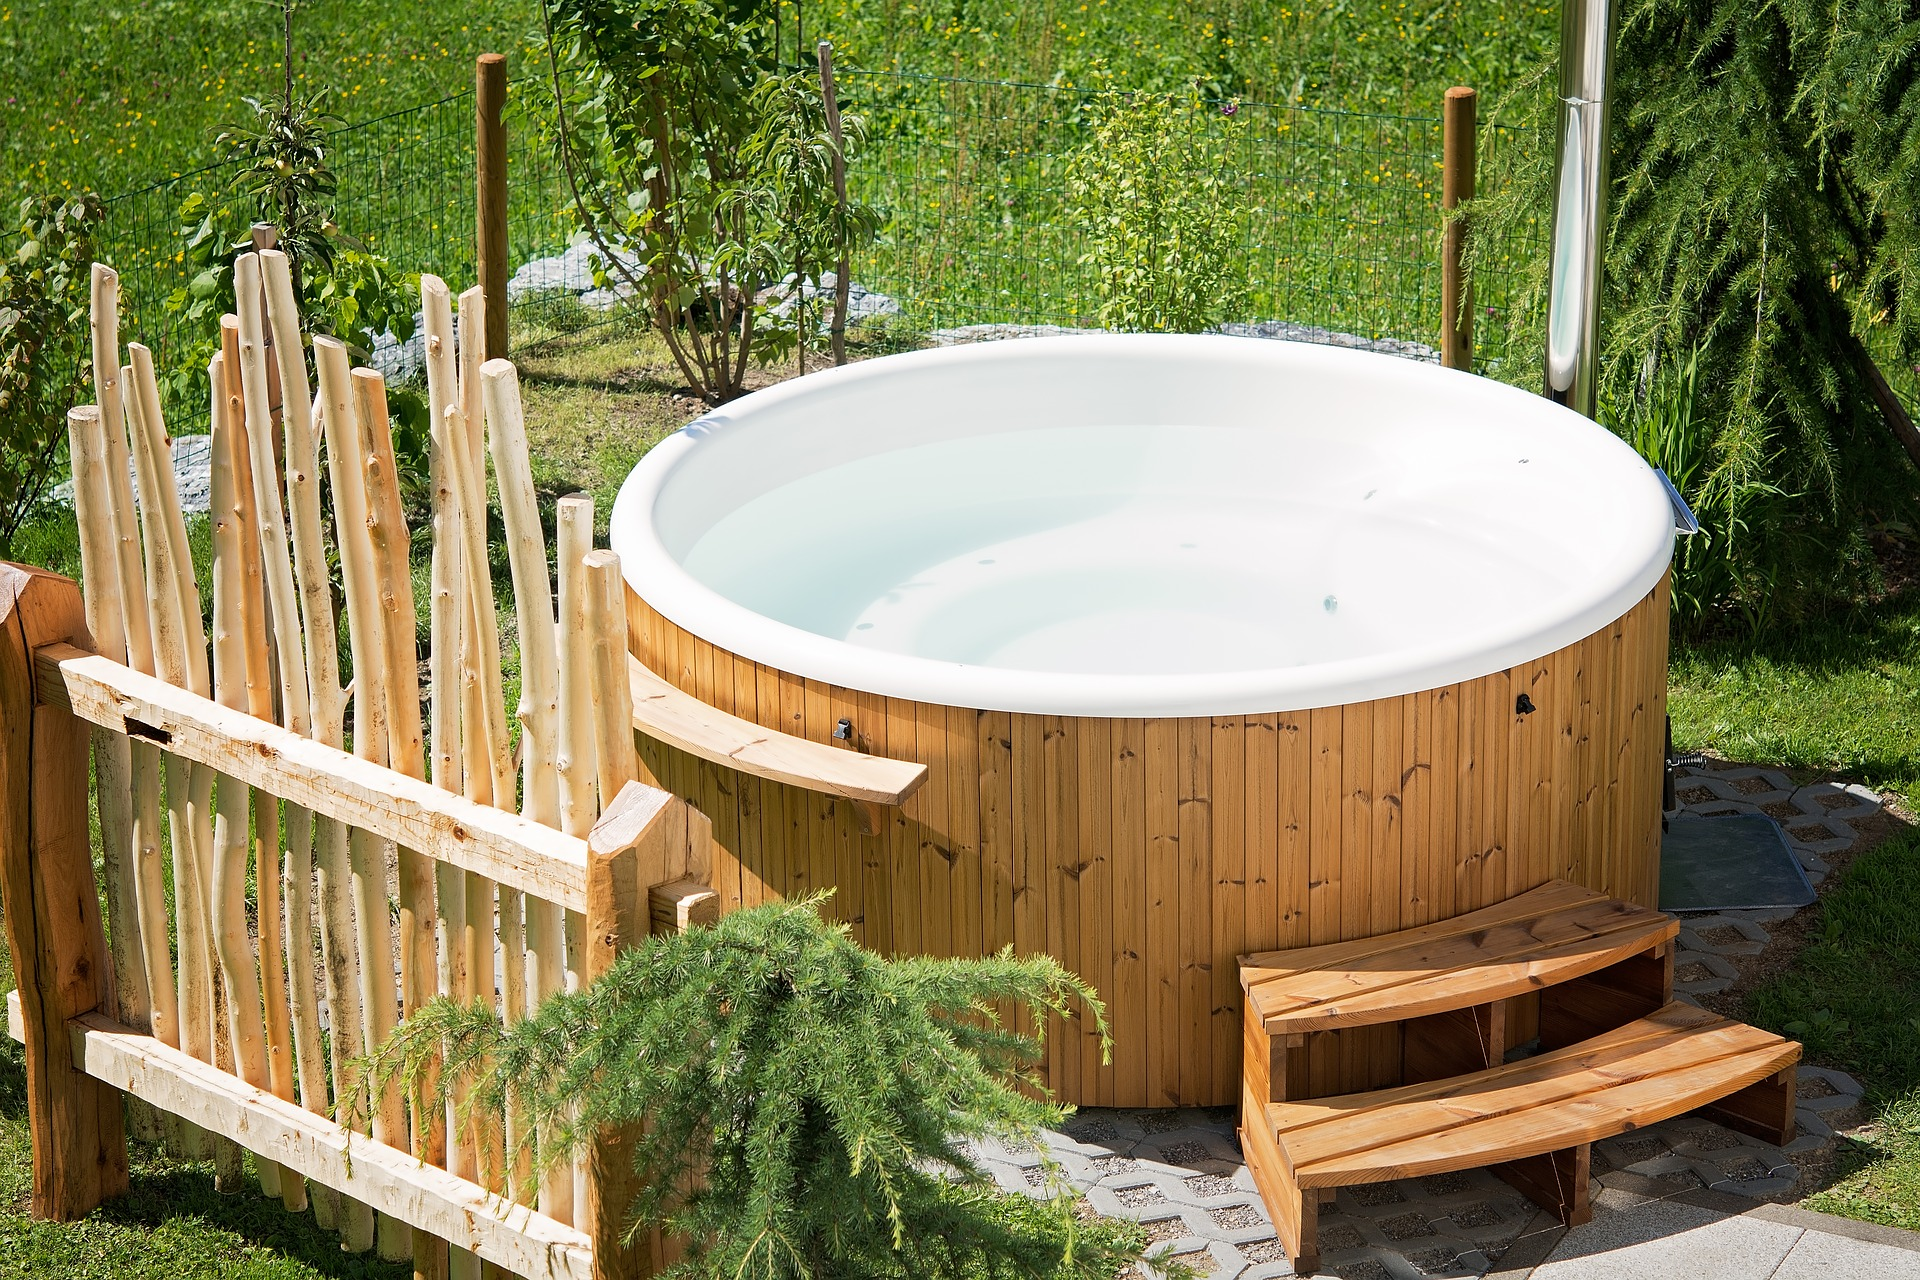 Spa Exterieur Semi Rigide Jacuzzi Extrieur Semienterr Simple Spa Luextrieur With Jacuzzi